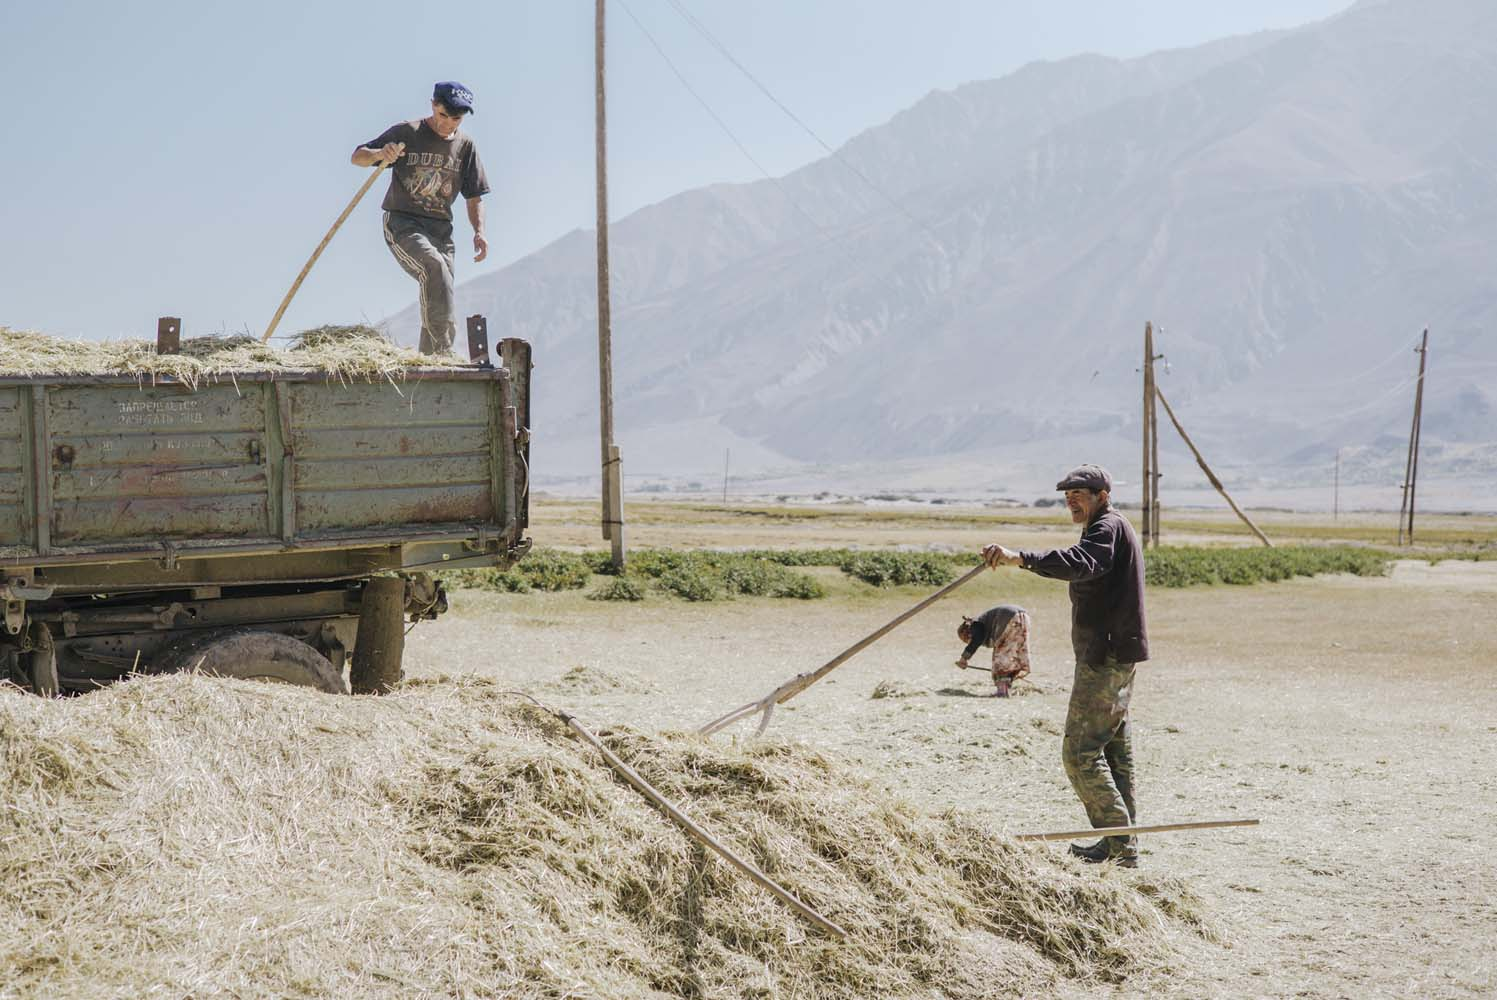 Farmers working with rudimentary techniques in the Pamir Mountains